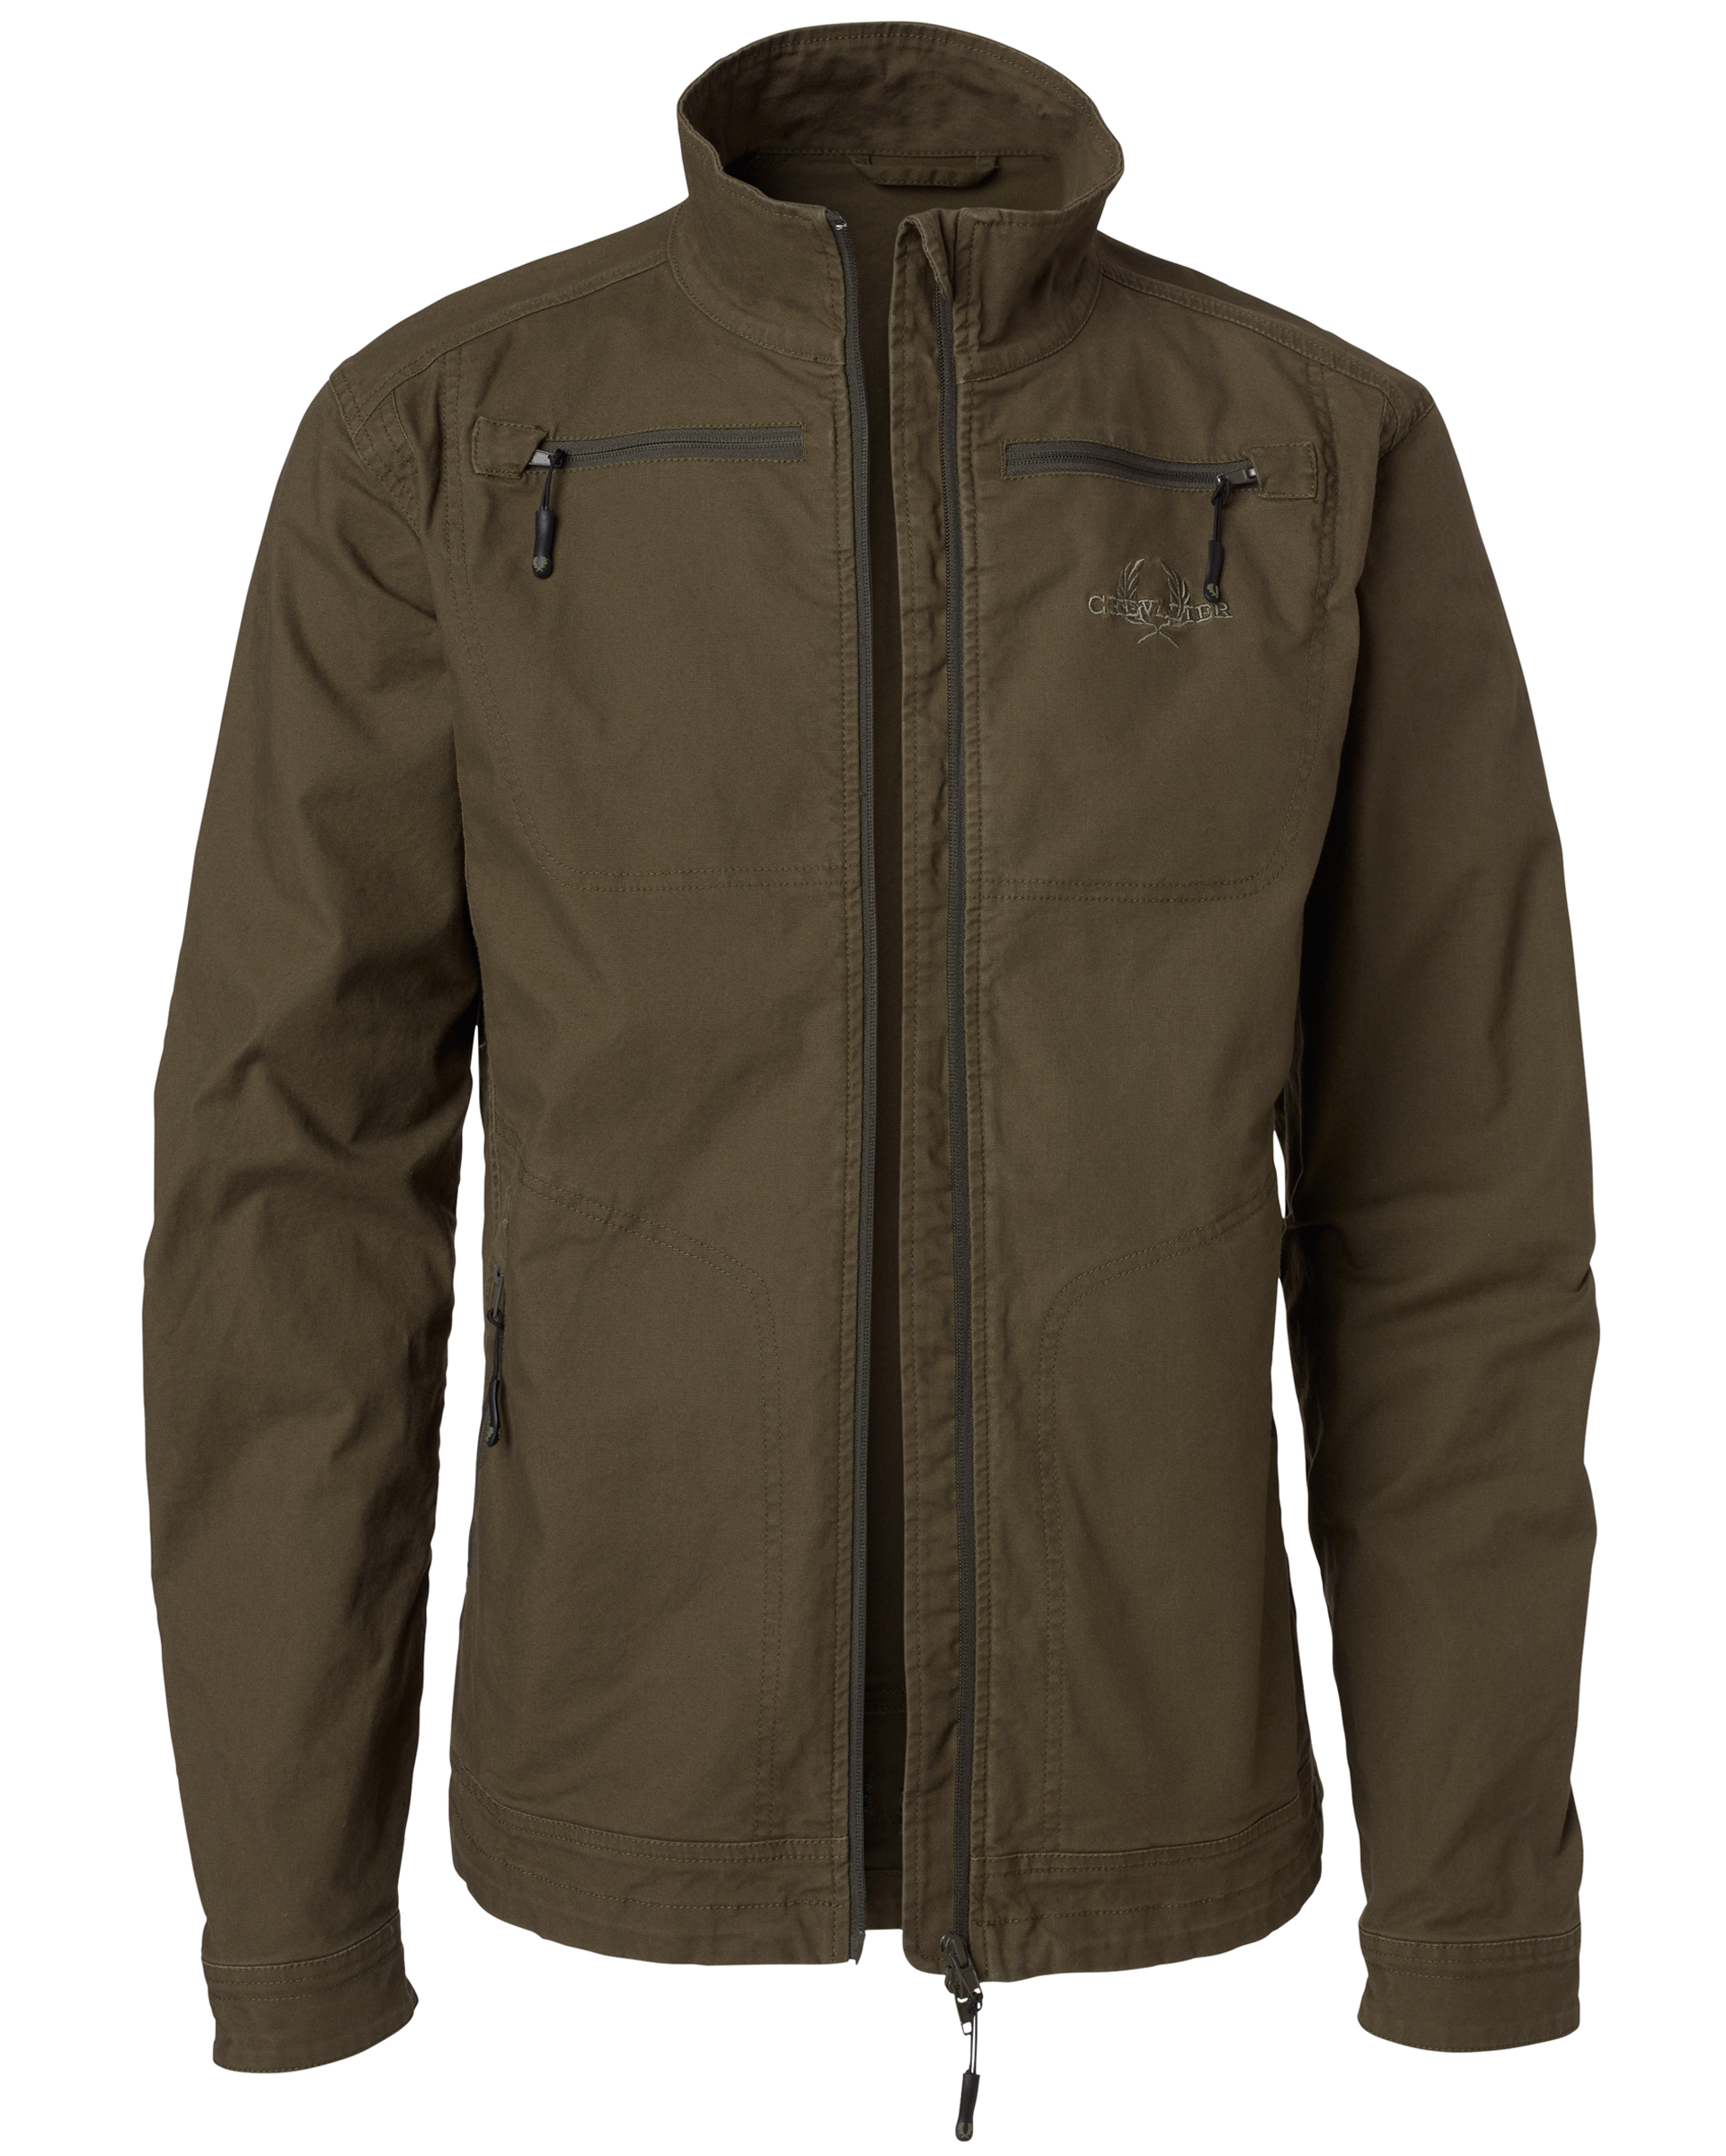 Jacka Chevalier Devon Action Coat